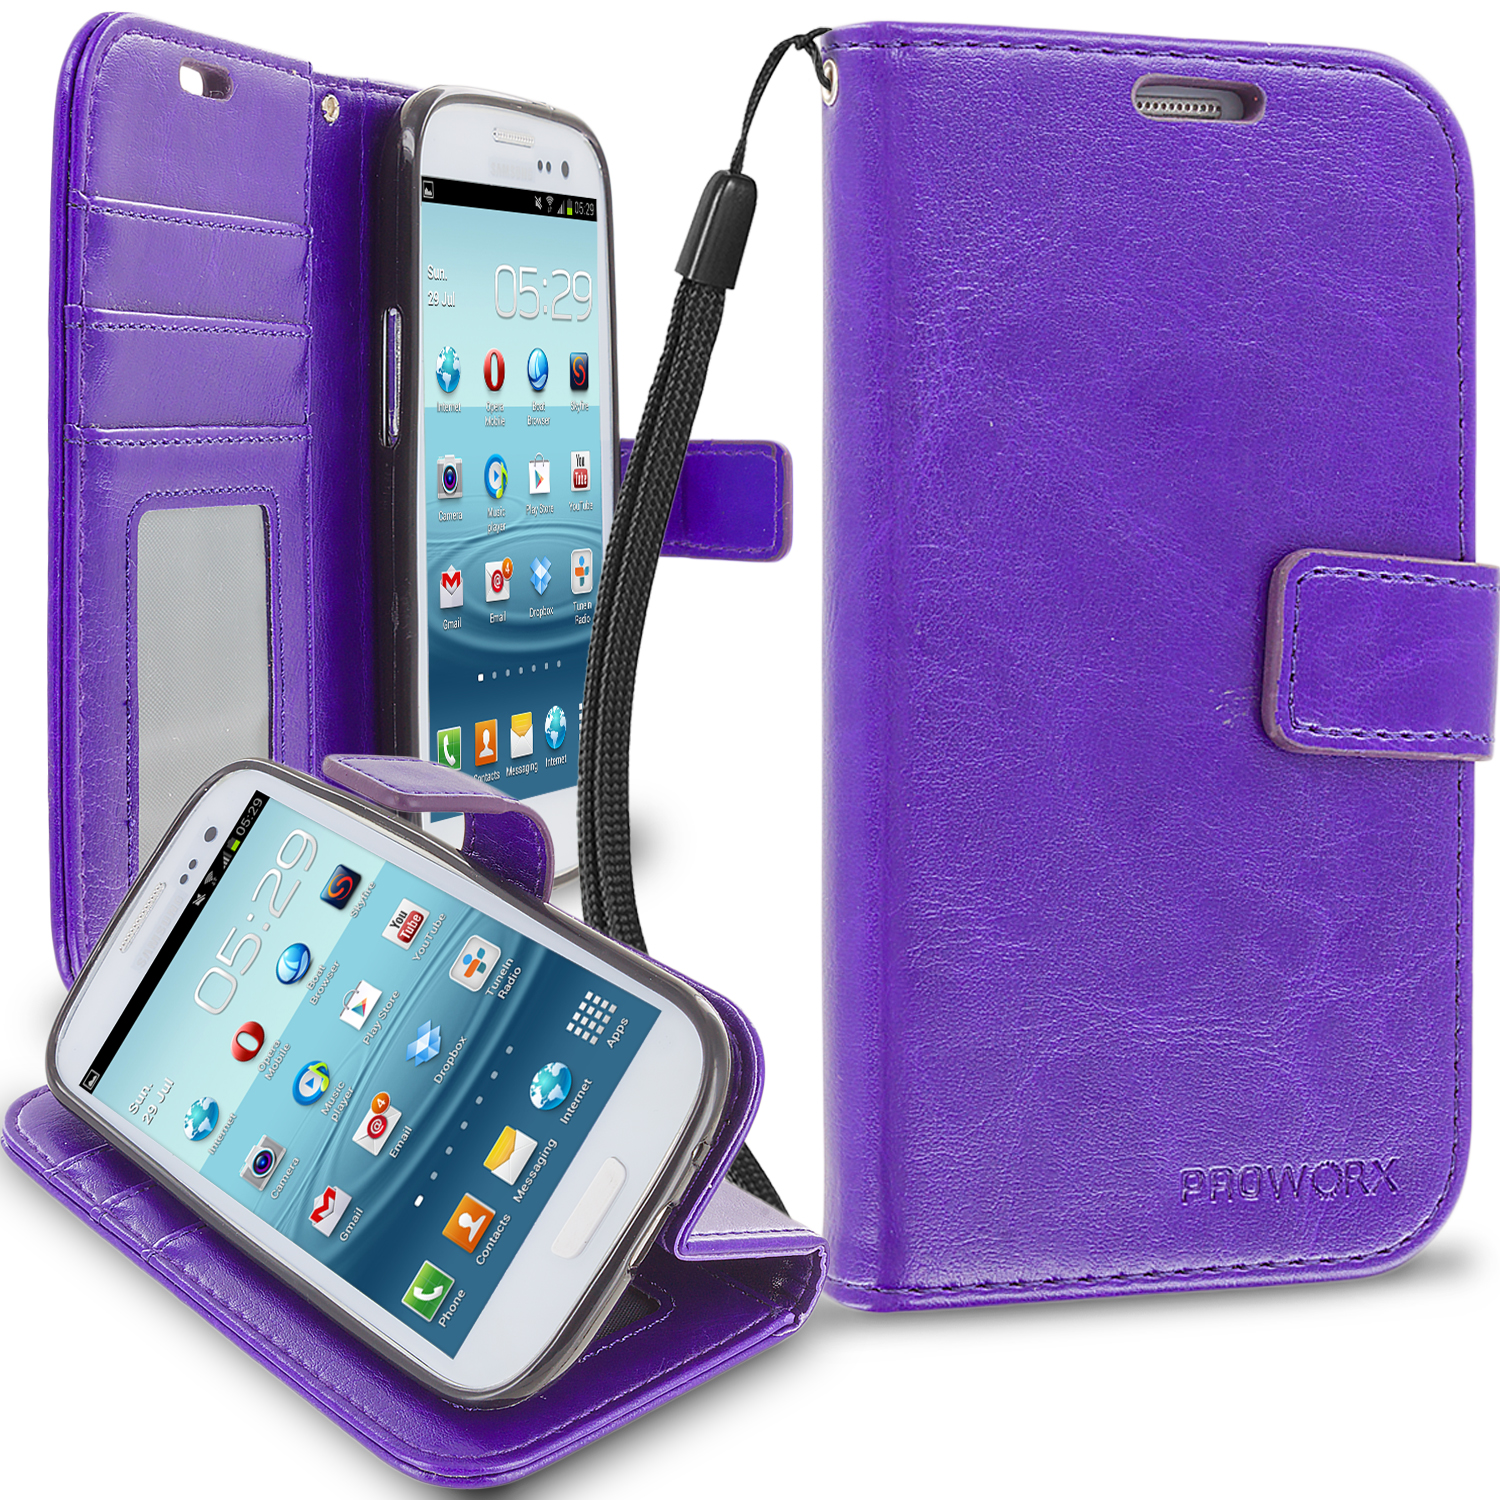 Samsung Galaxy S3 Purple ProWorx Wallet Case Luxury PU Leather Case Cover With Card Slots & Stand